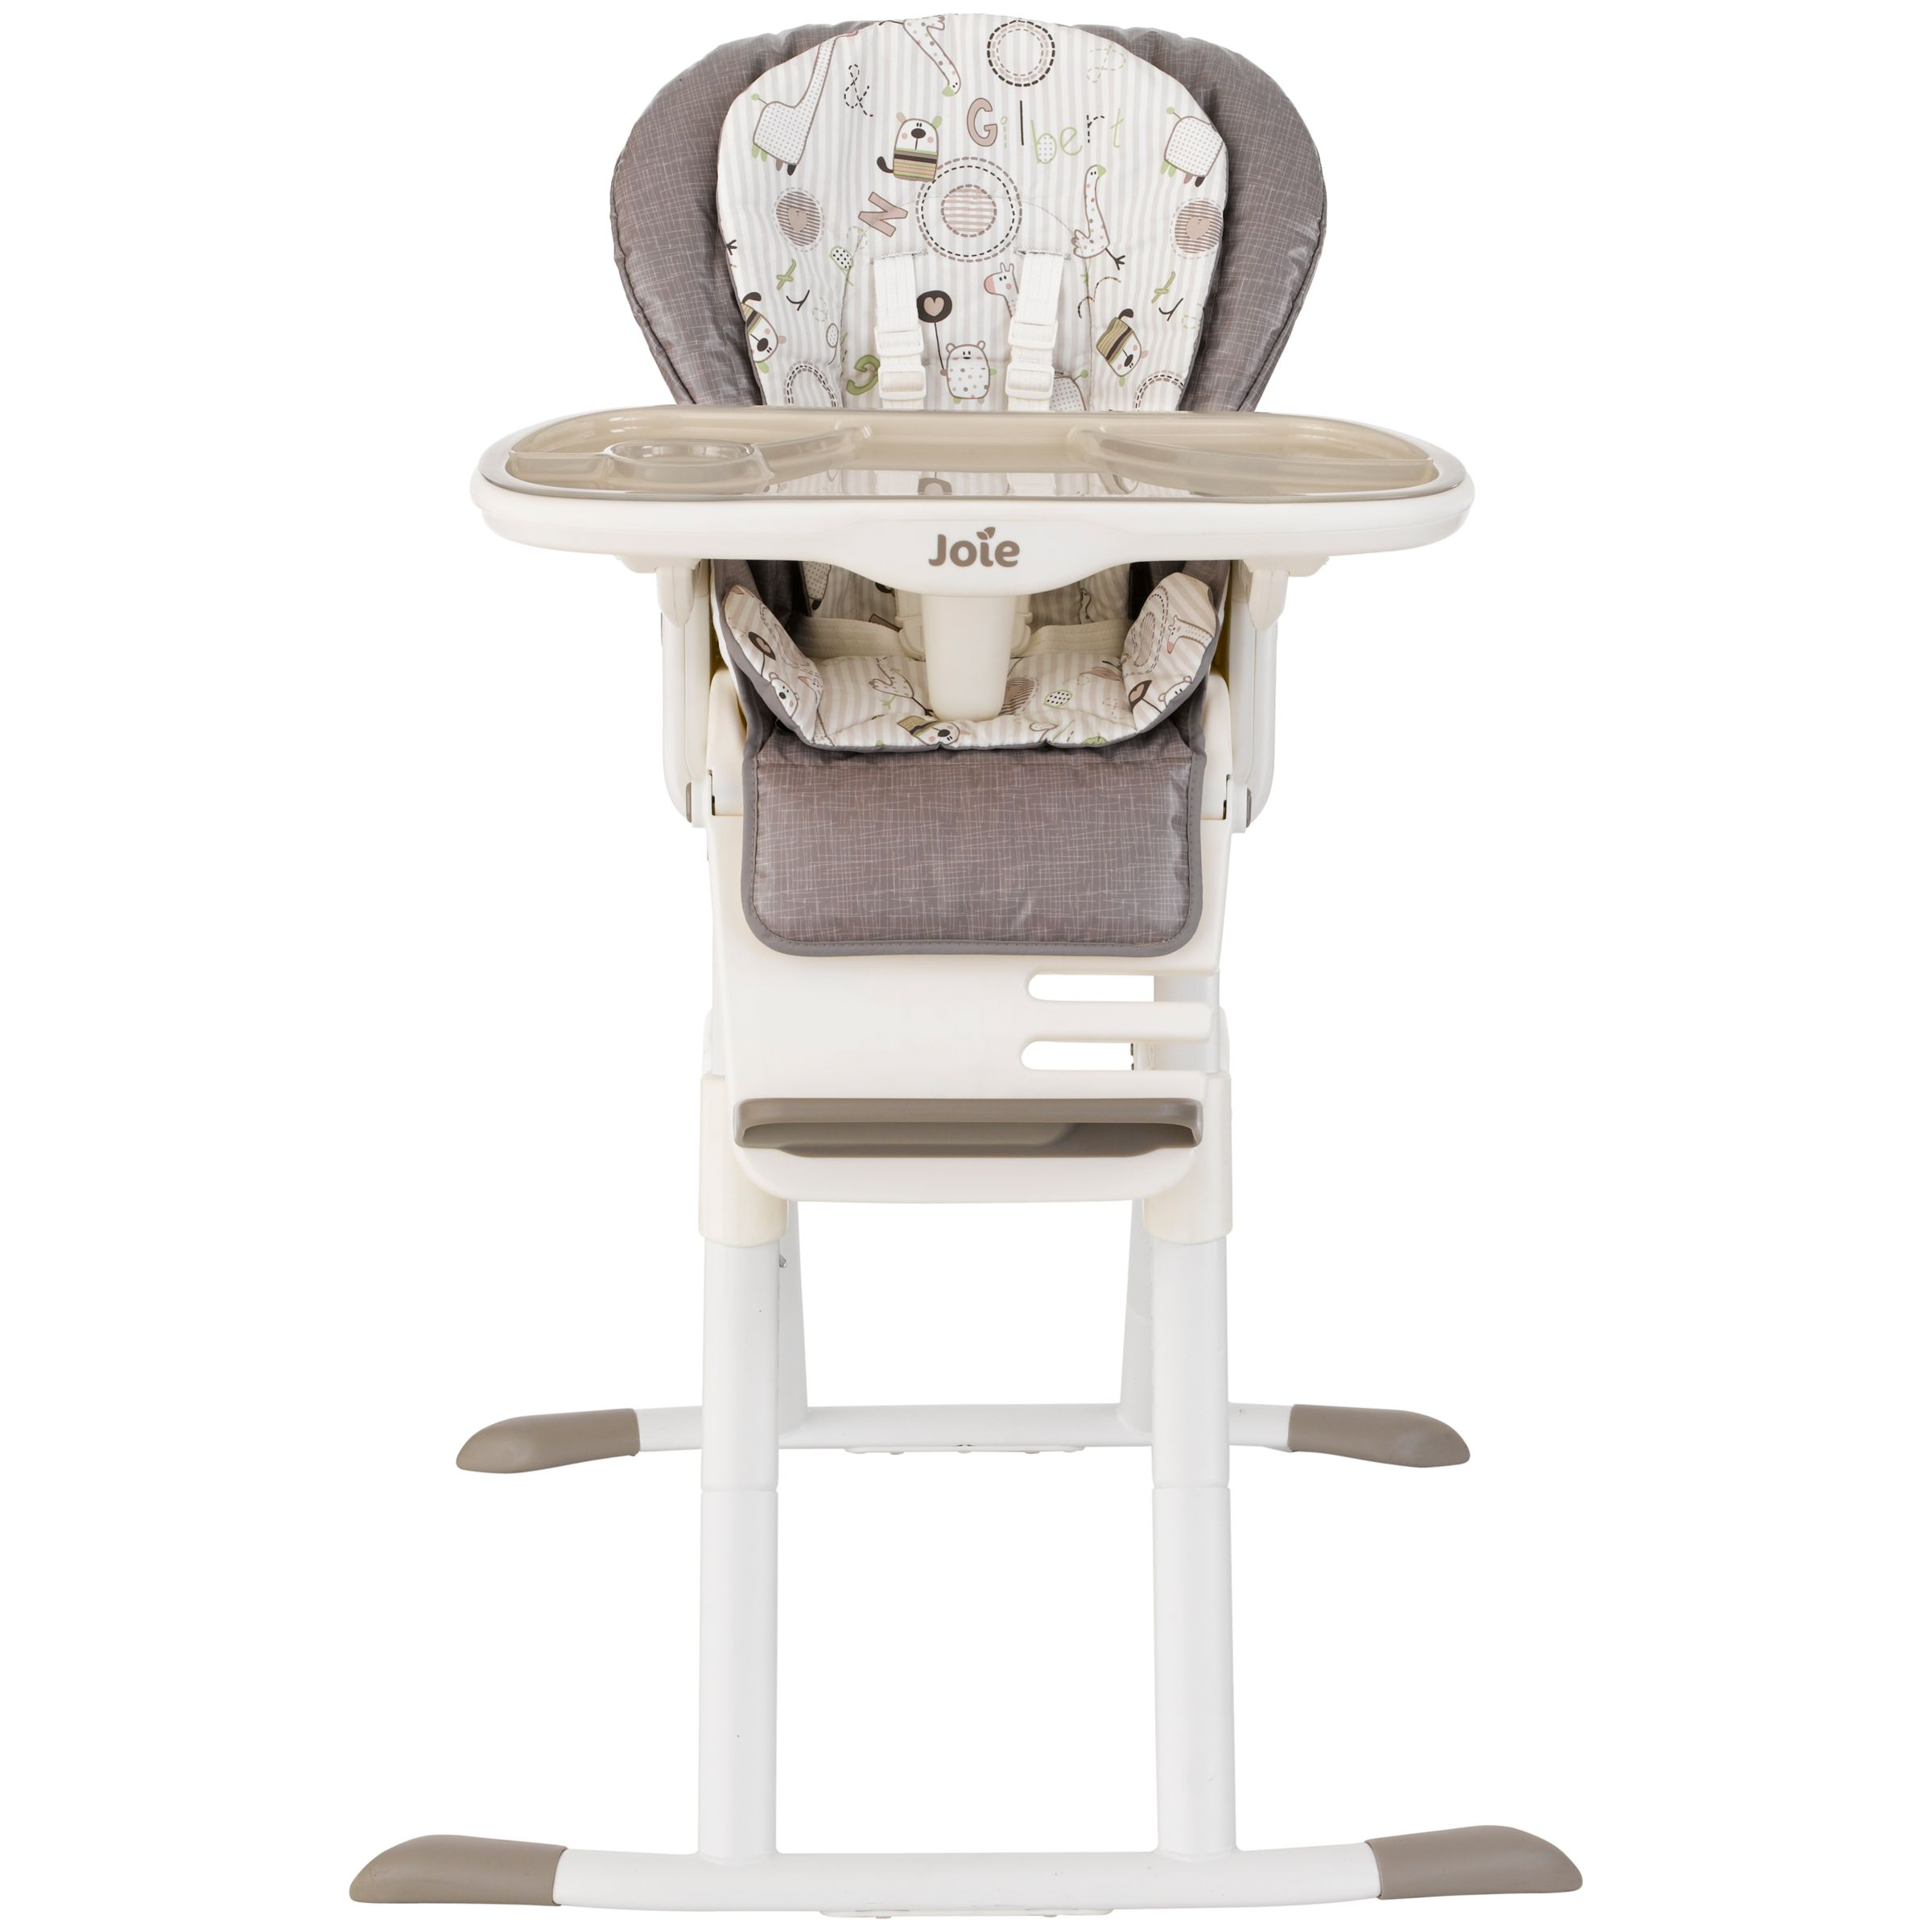 Joie Baby Joie Baby Mimzy 360 Highchair, New Ned